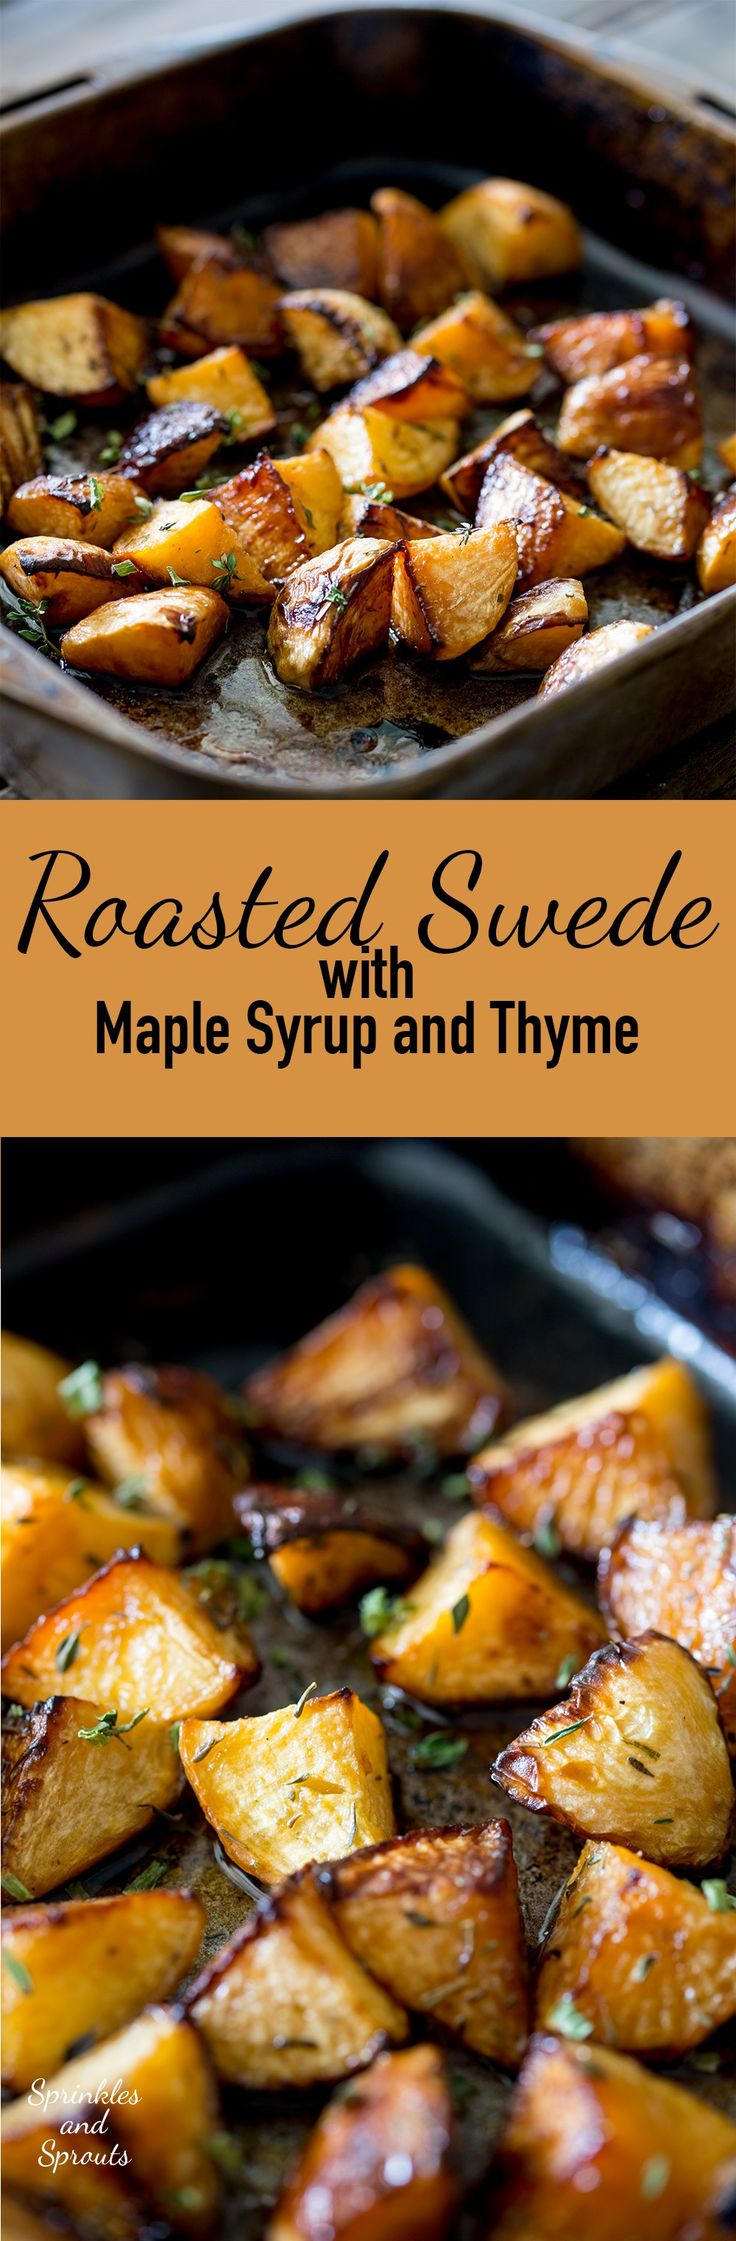 This roasted swede (roasted rutabaga) dish is a wonderful addition to your…